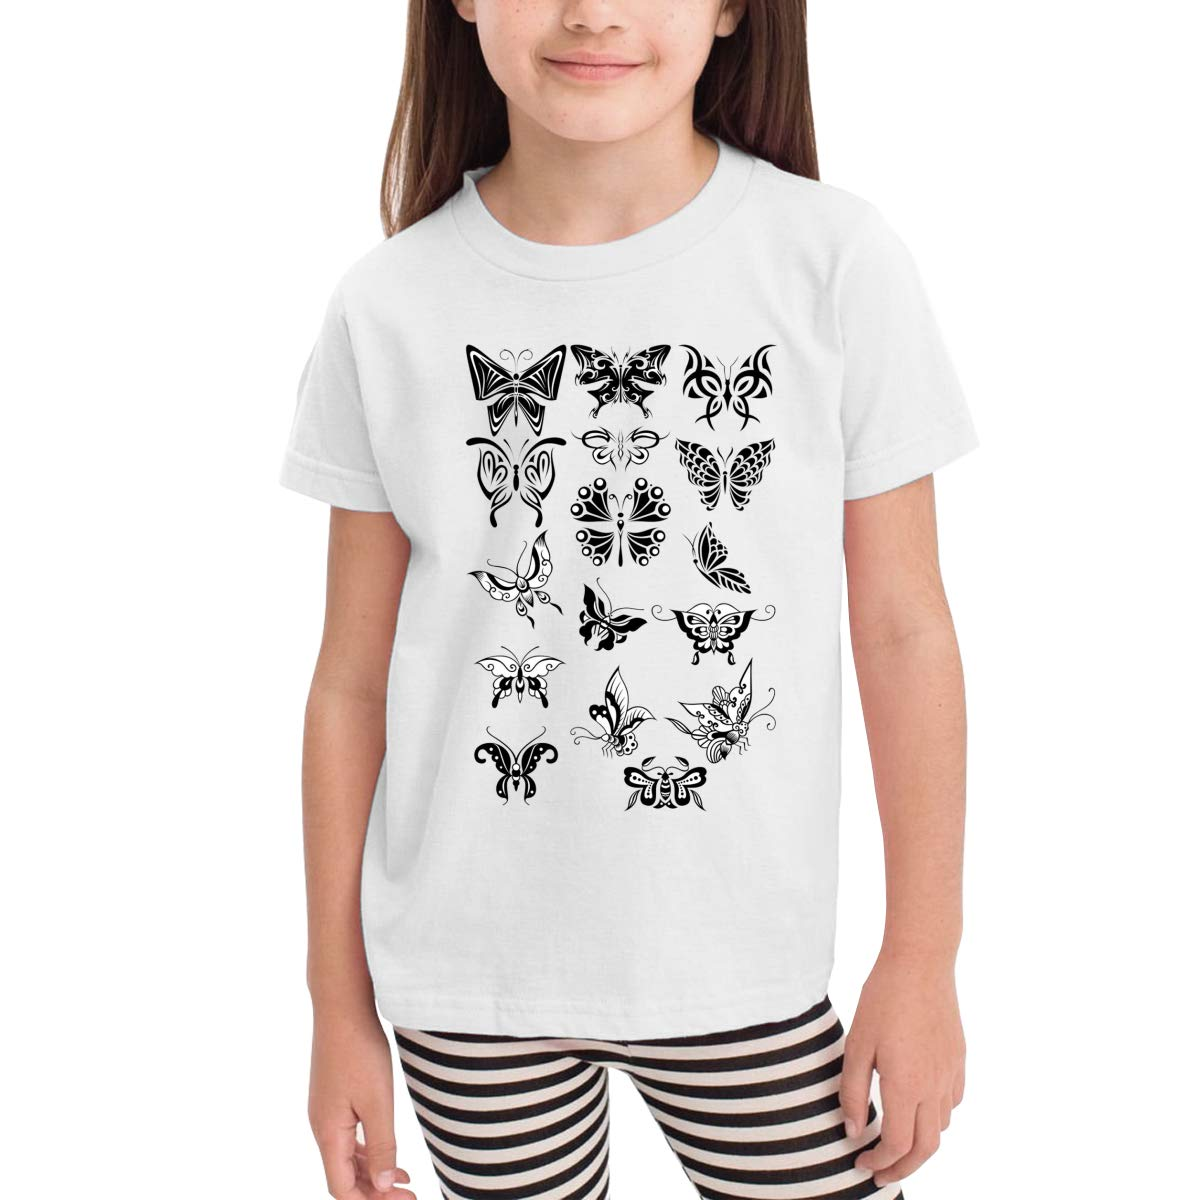 Onlybabycare Watercolor Butterflies 100/% Cotton Toddler Baby Boys Girls Kids Short Sleeve T Shirt Top Tee Clothes 2-6 T